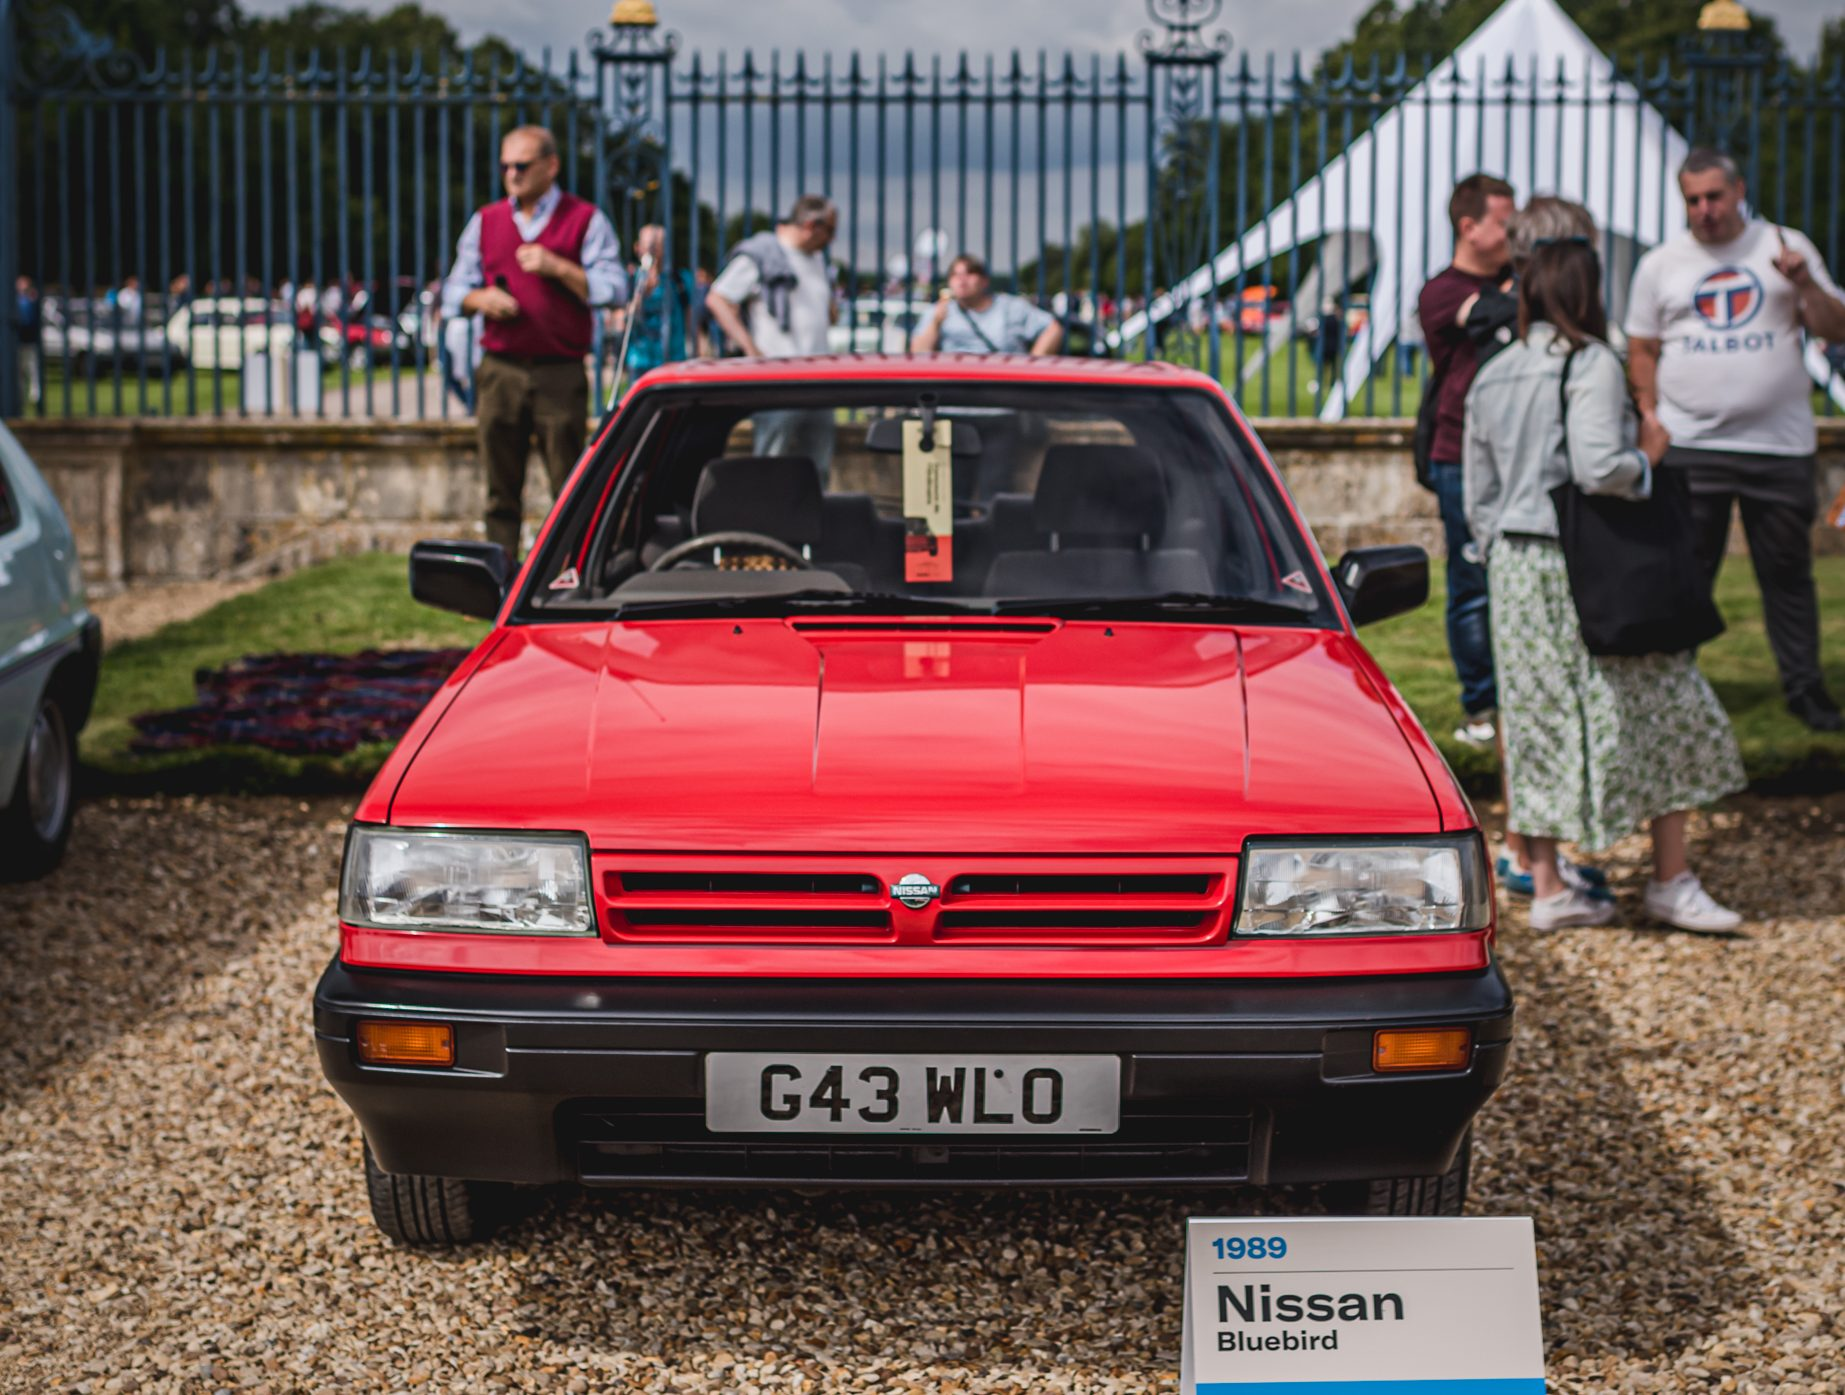 Bad rep-utation: 7 company cars from the Festival of the Unexceptional